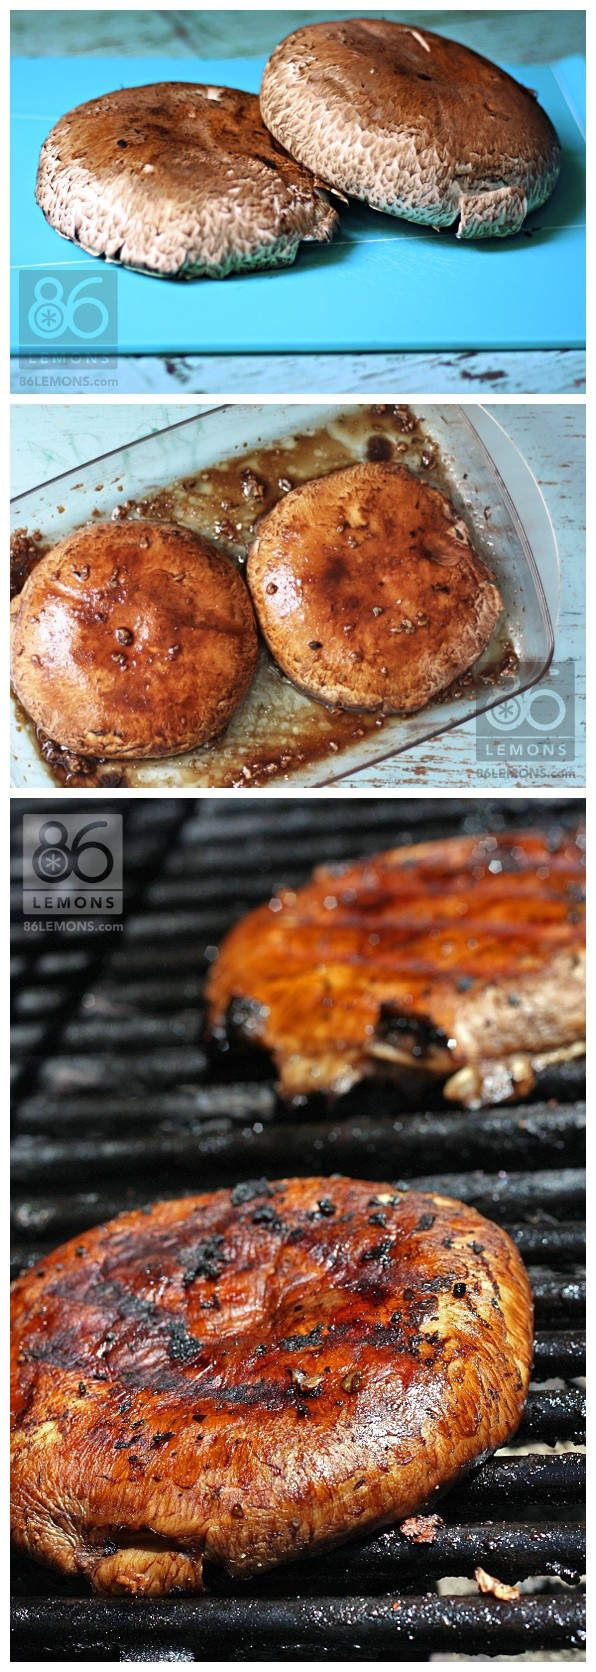 I prepped the portos, Hubs grilled 'em (to perfection, I might add). I knew they would be good, but…